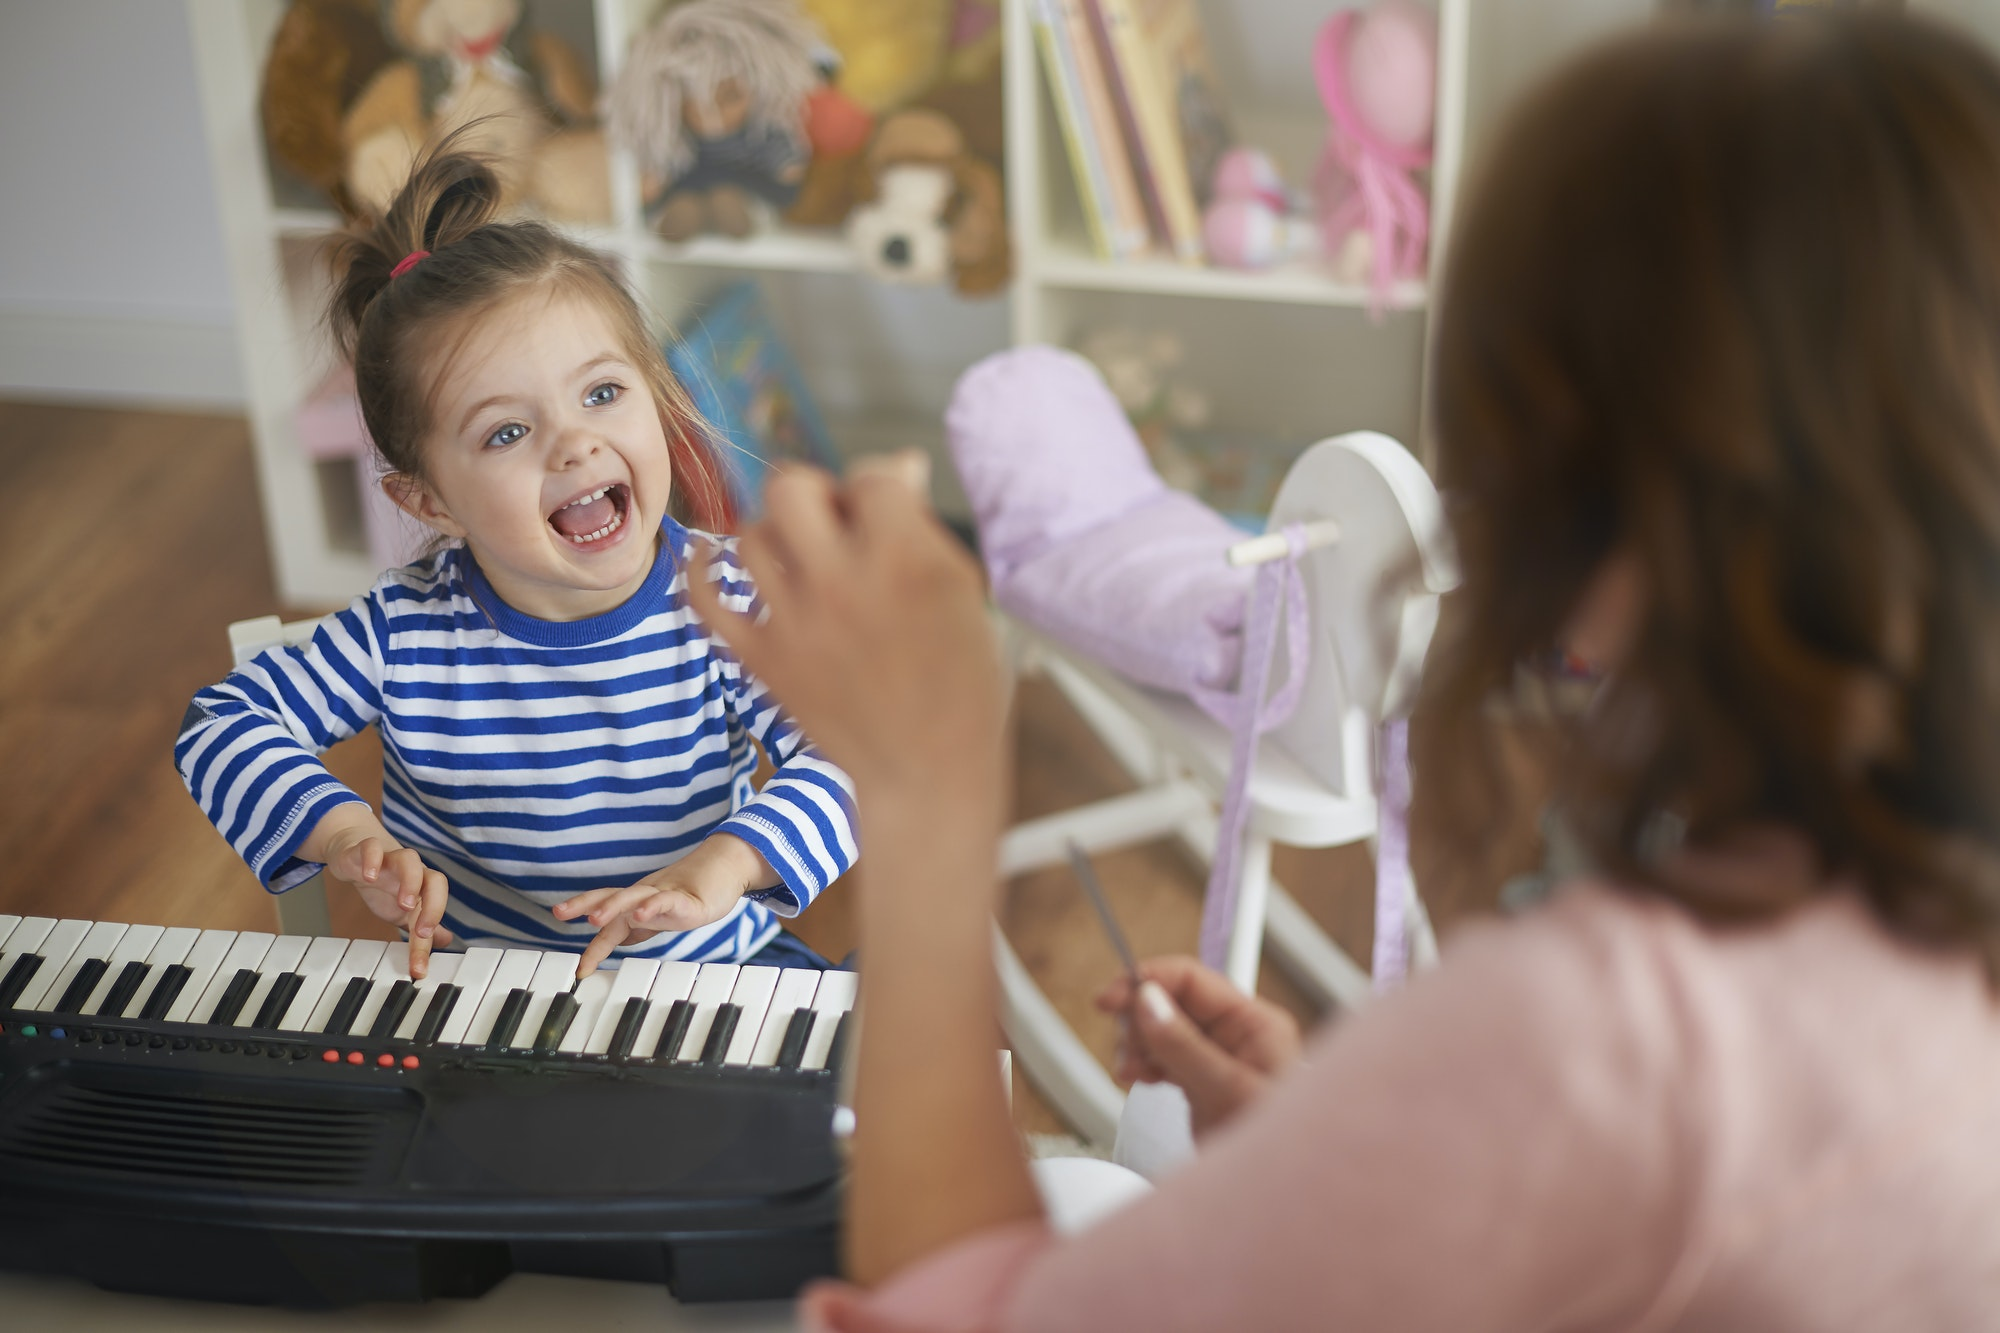 Girl Singing and playing on musical instrument